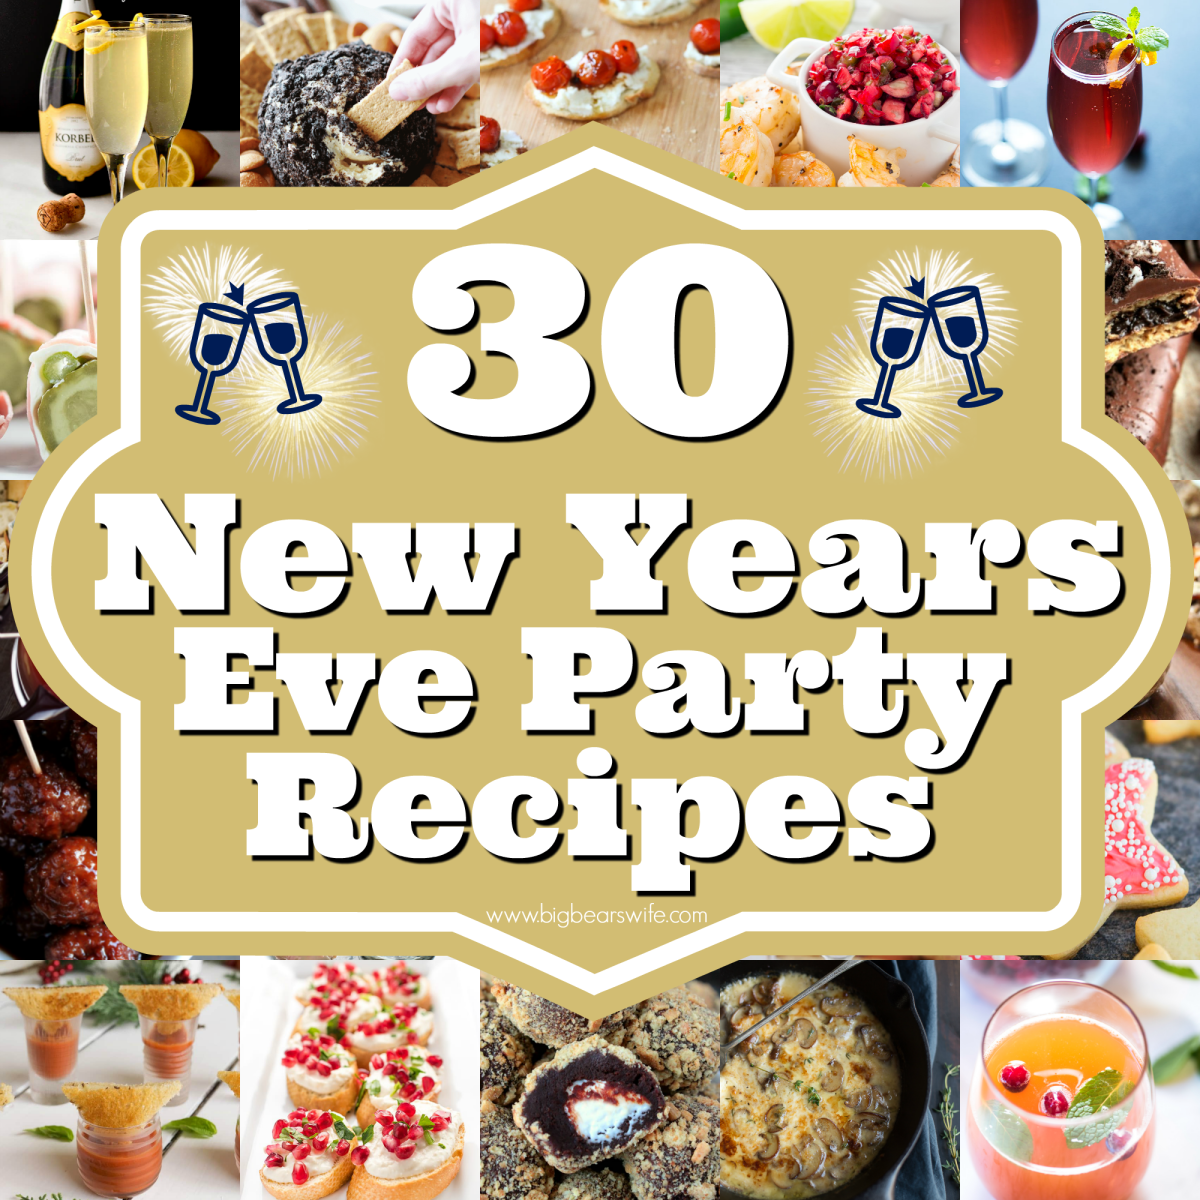 30 New Years Eve Party Recipes - Savory Ideas, Sweets and ...